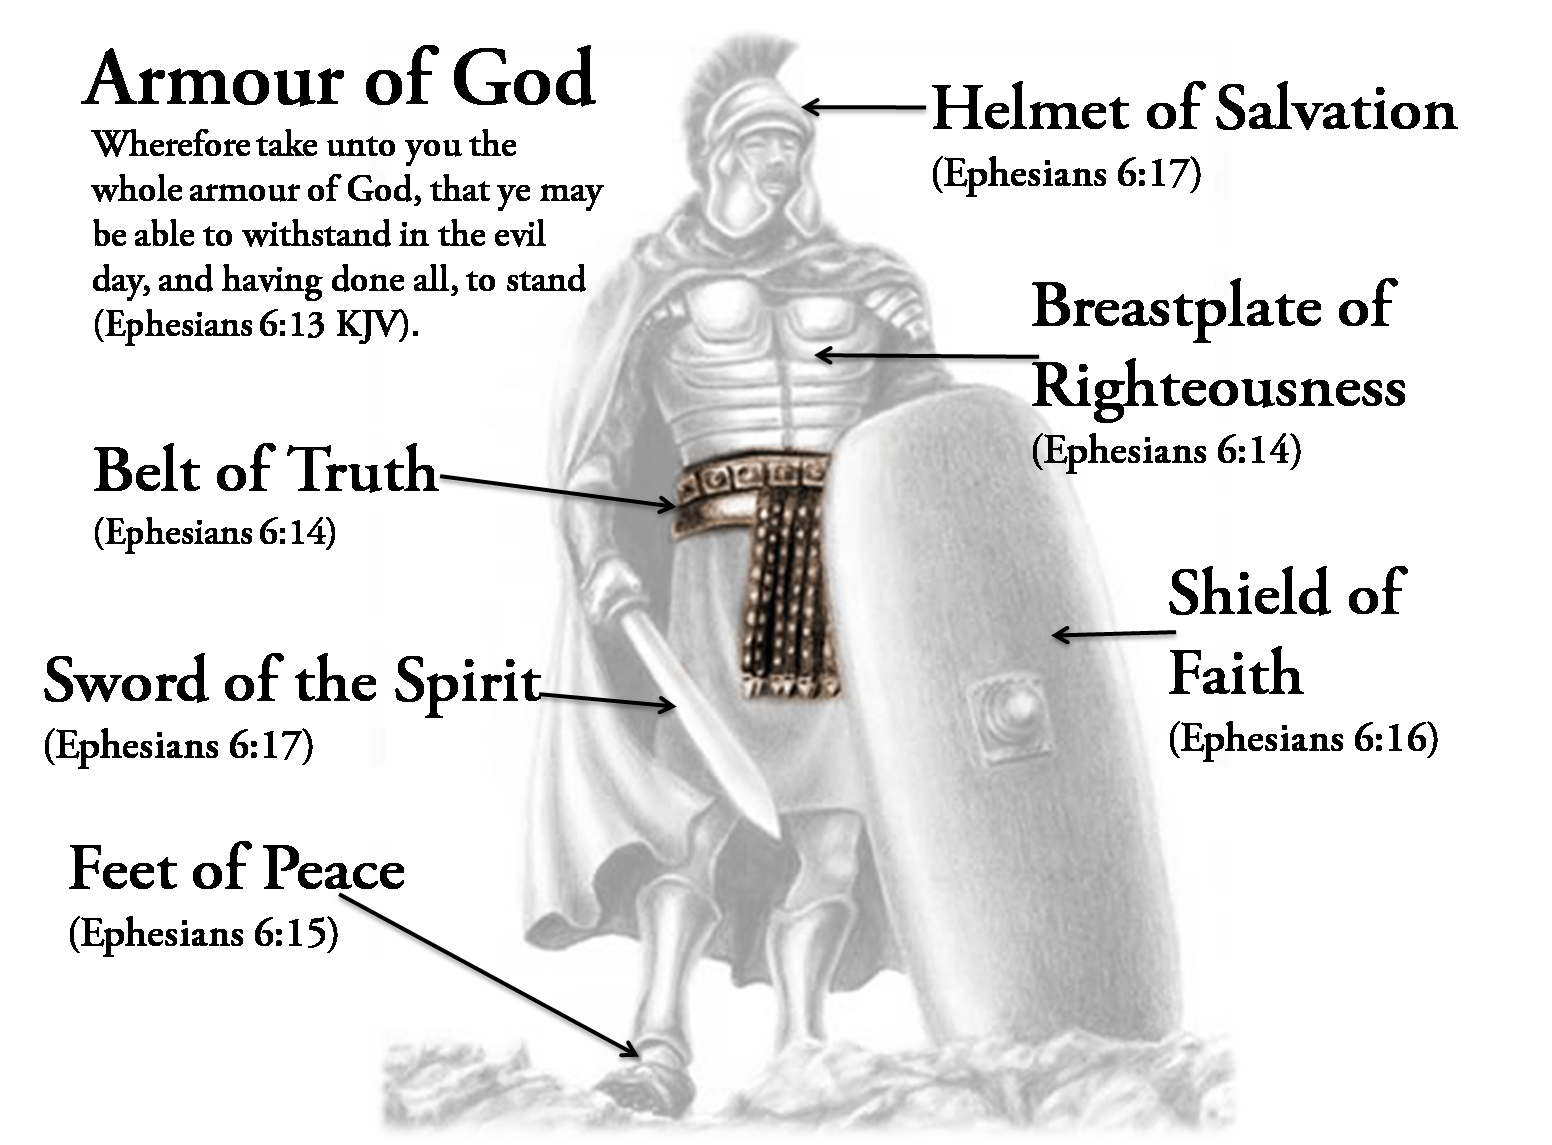 Are you Prepared for Battle?   Armor of god, Helmet of salvation, Ephesians 6